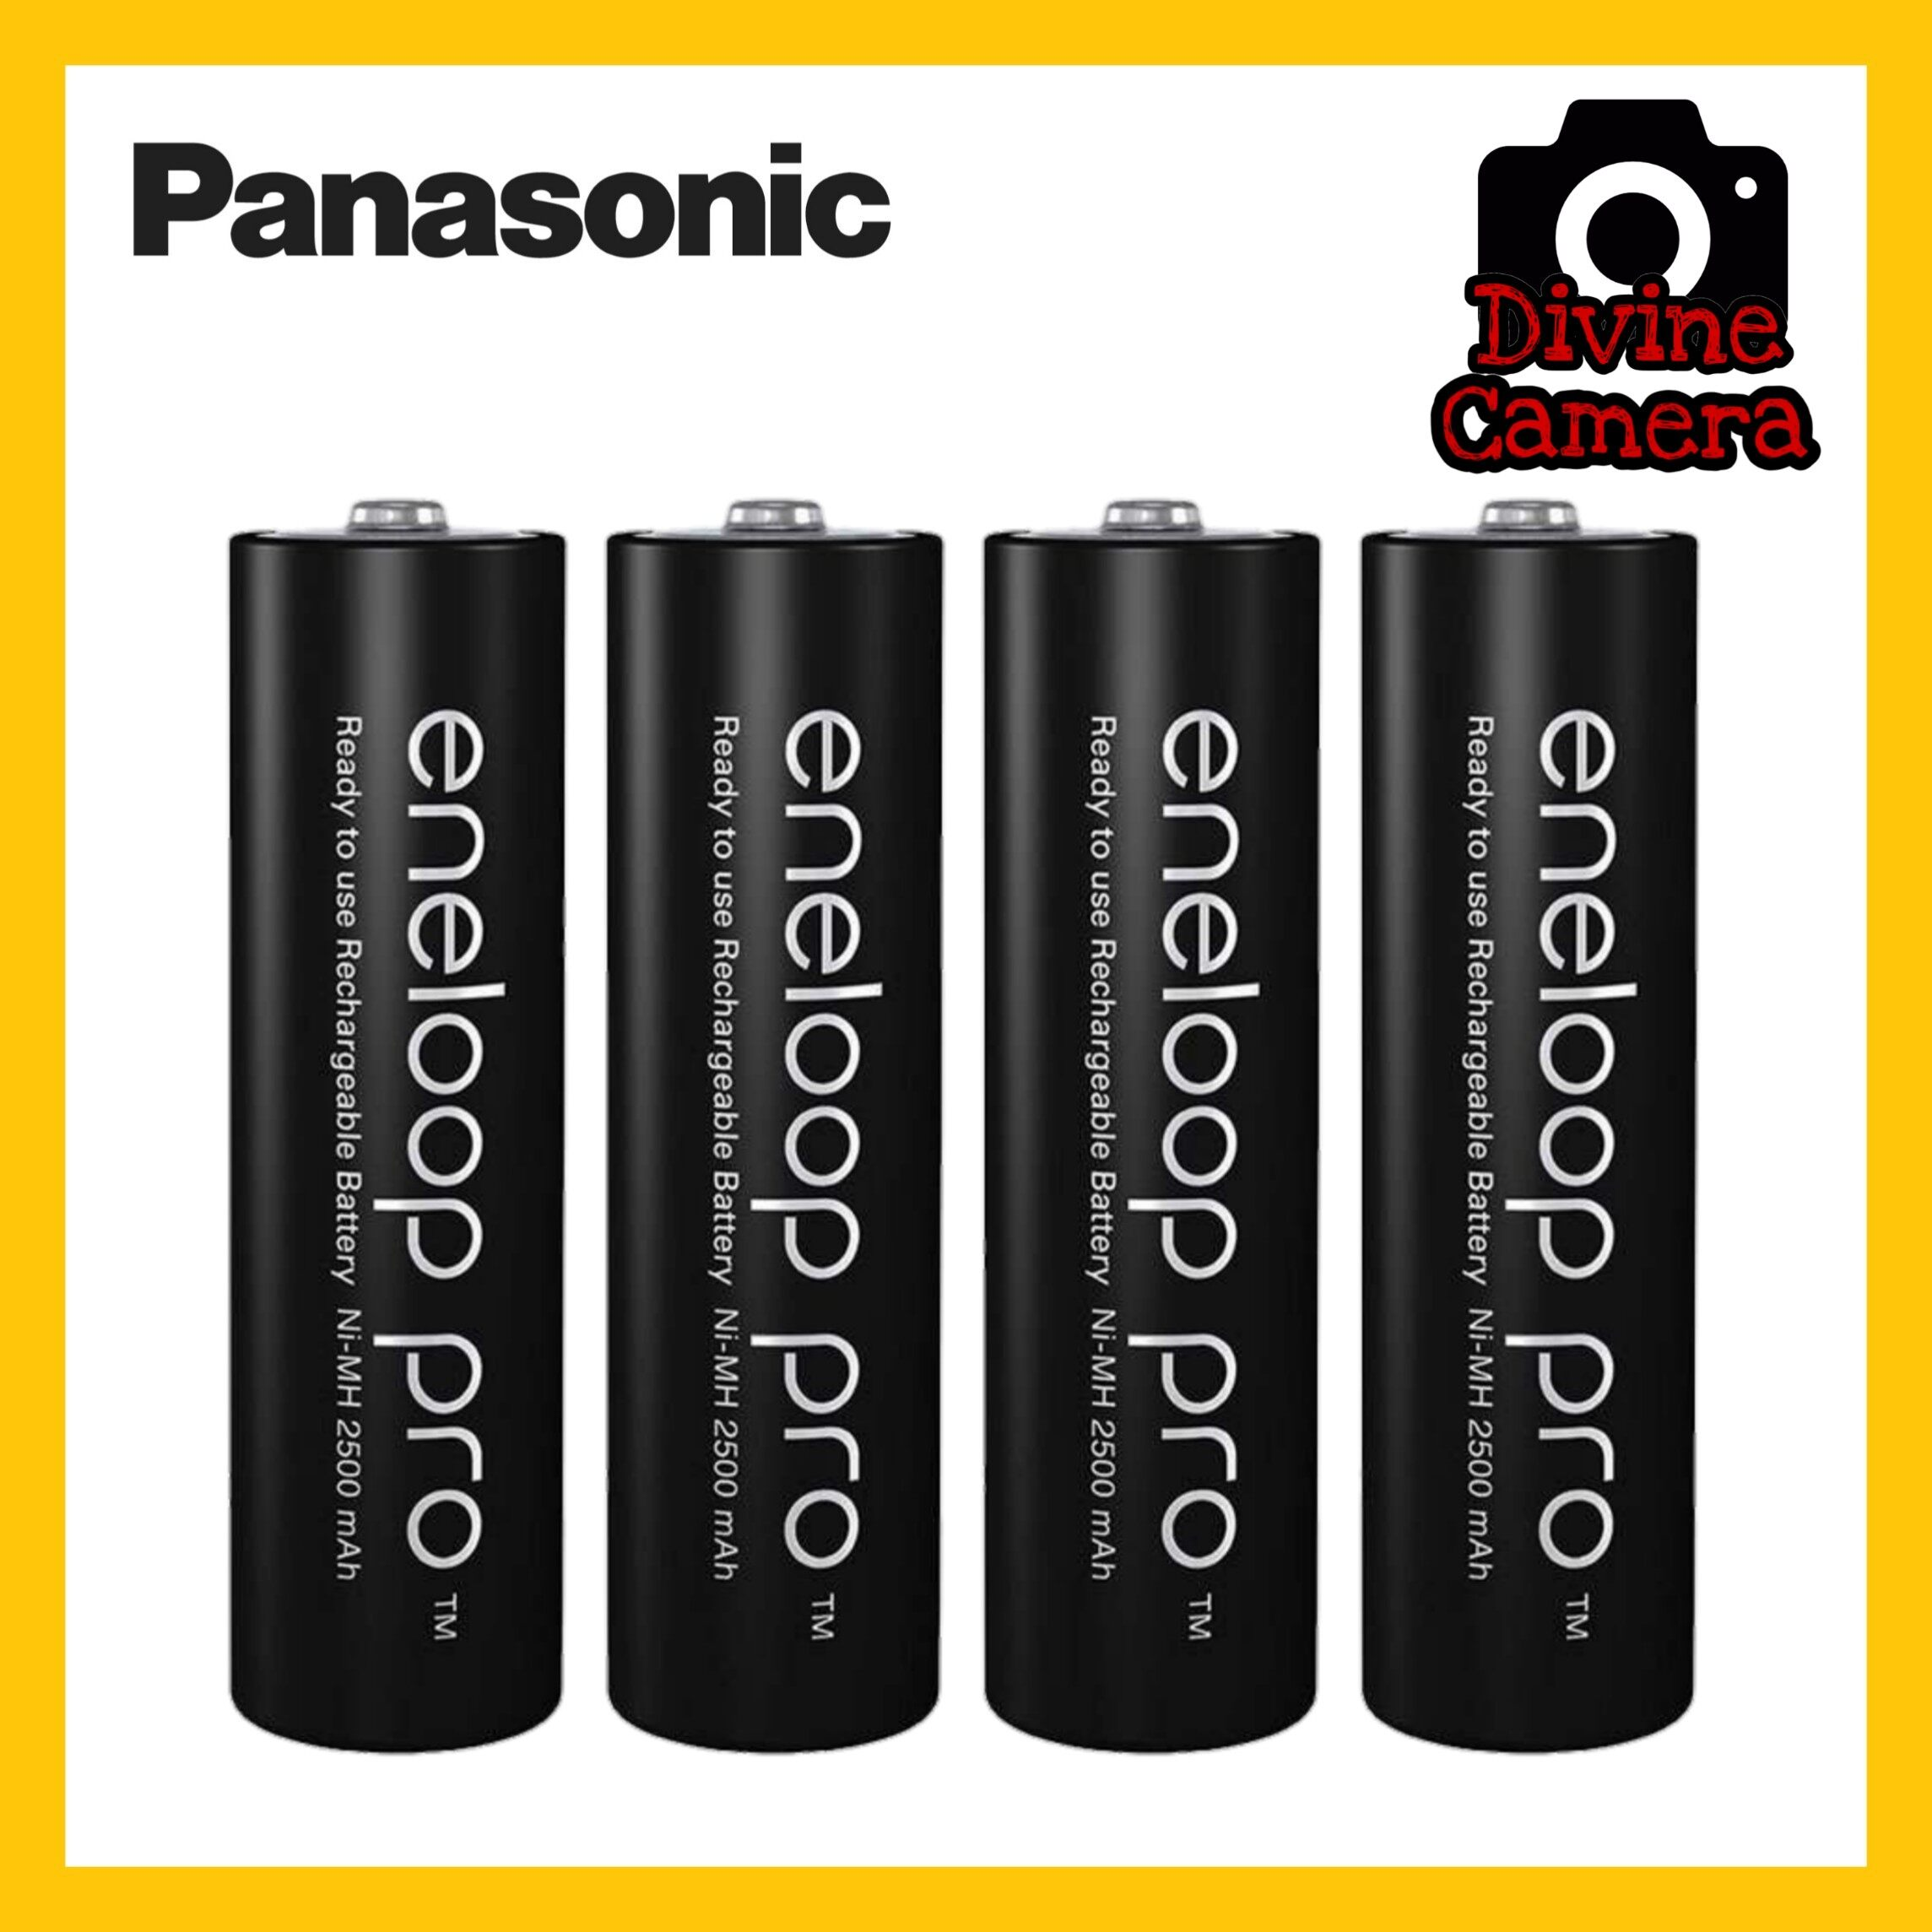 Panasonic Eneloop Pro Rechargeable AA Ni-MH 4 x Batteries with Charger (2550mAh) Highlights K-KJ55HCC40M